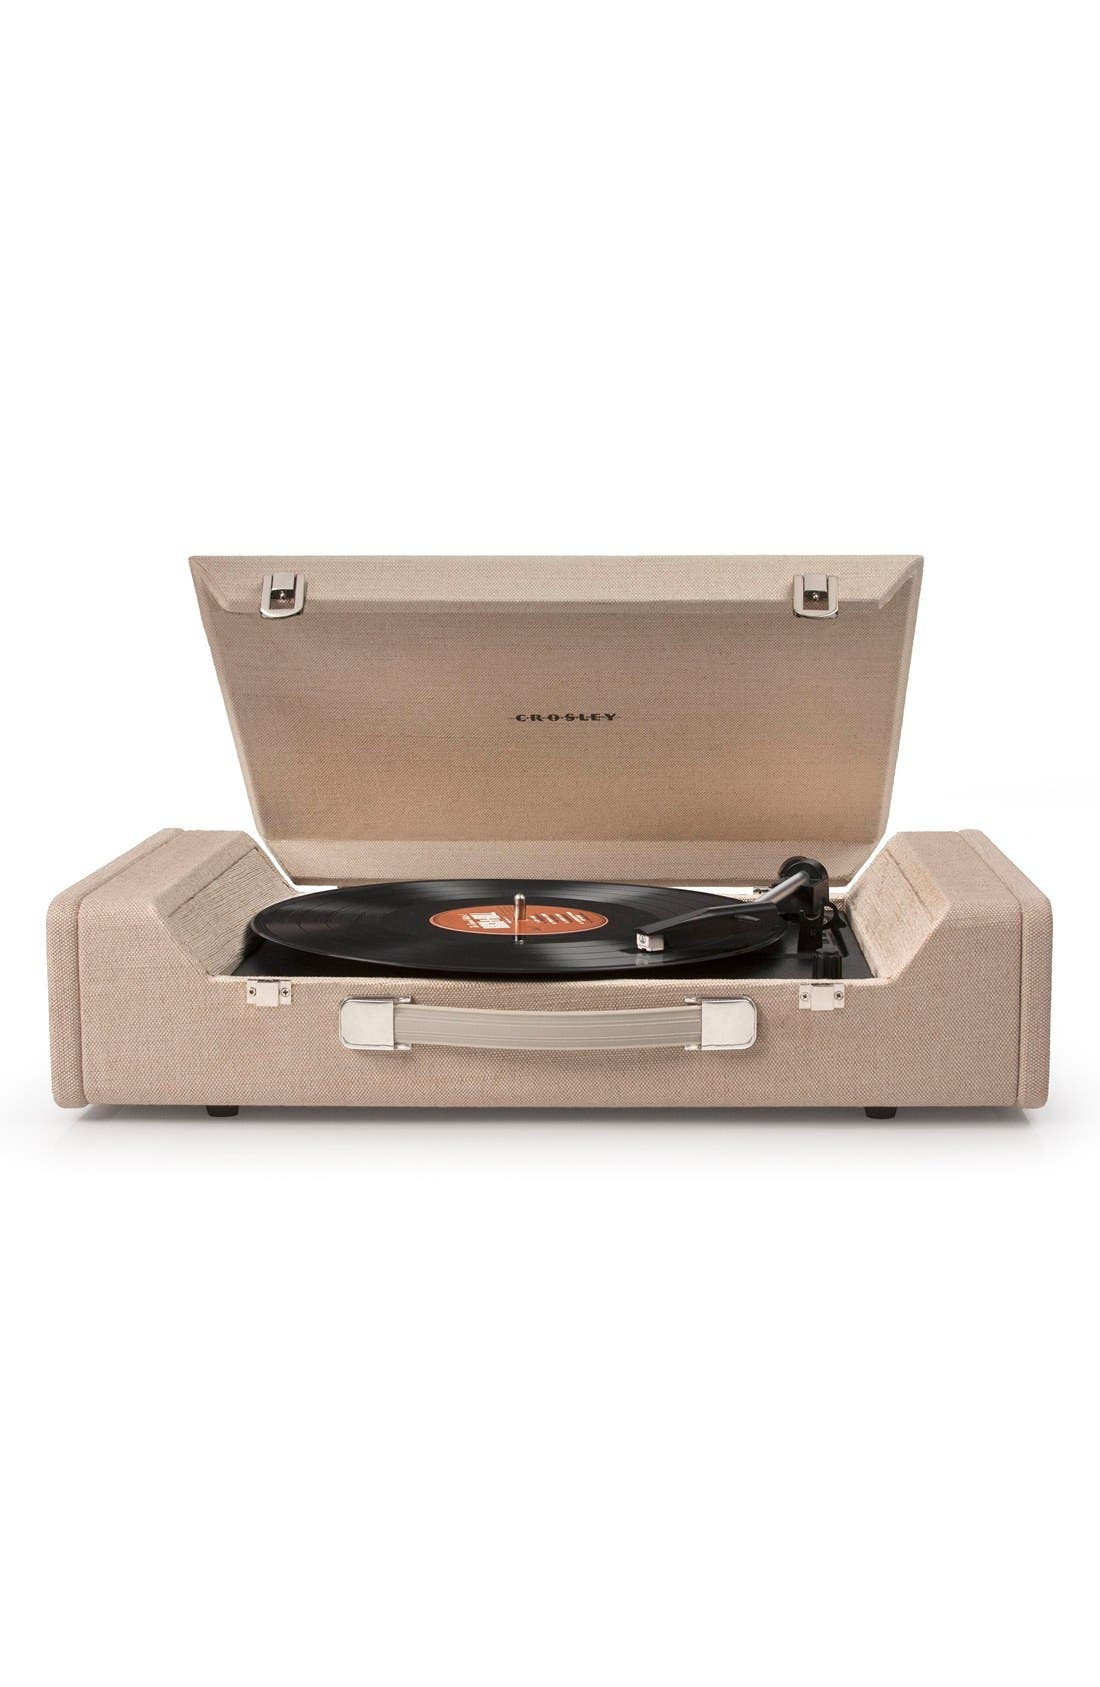 'Nomad' Turntable,                             Main thumbnail 1, color,                             Beige/ Khaki